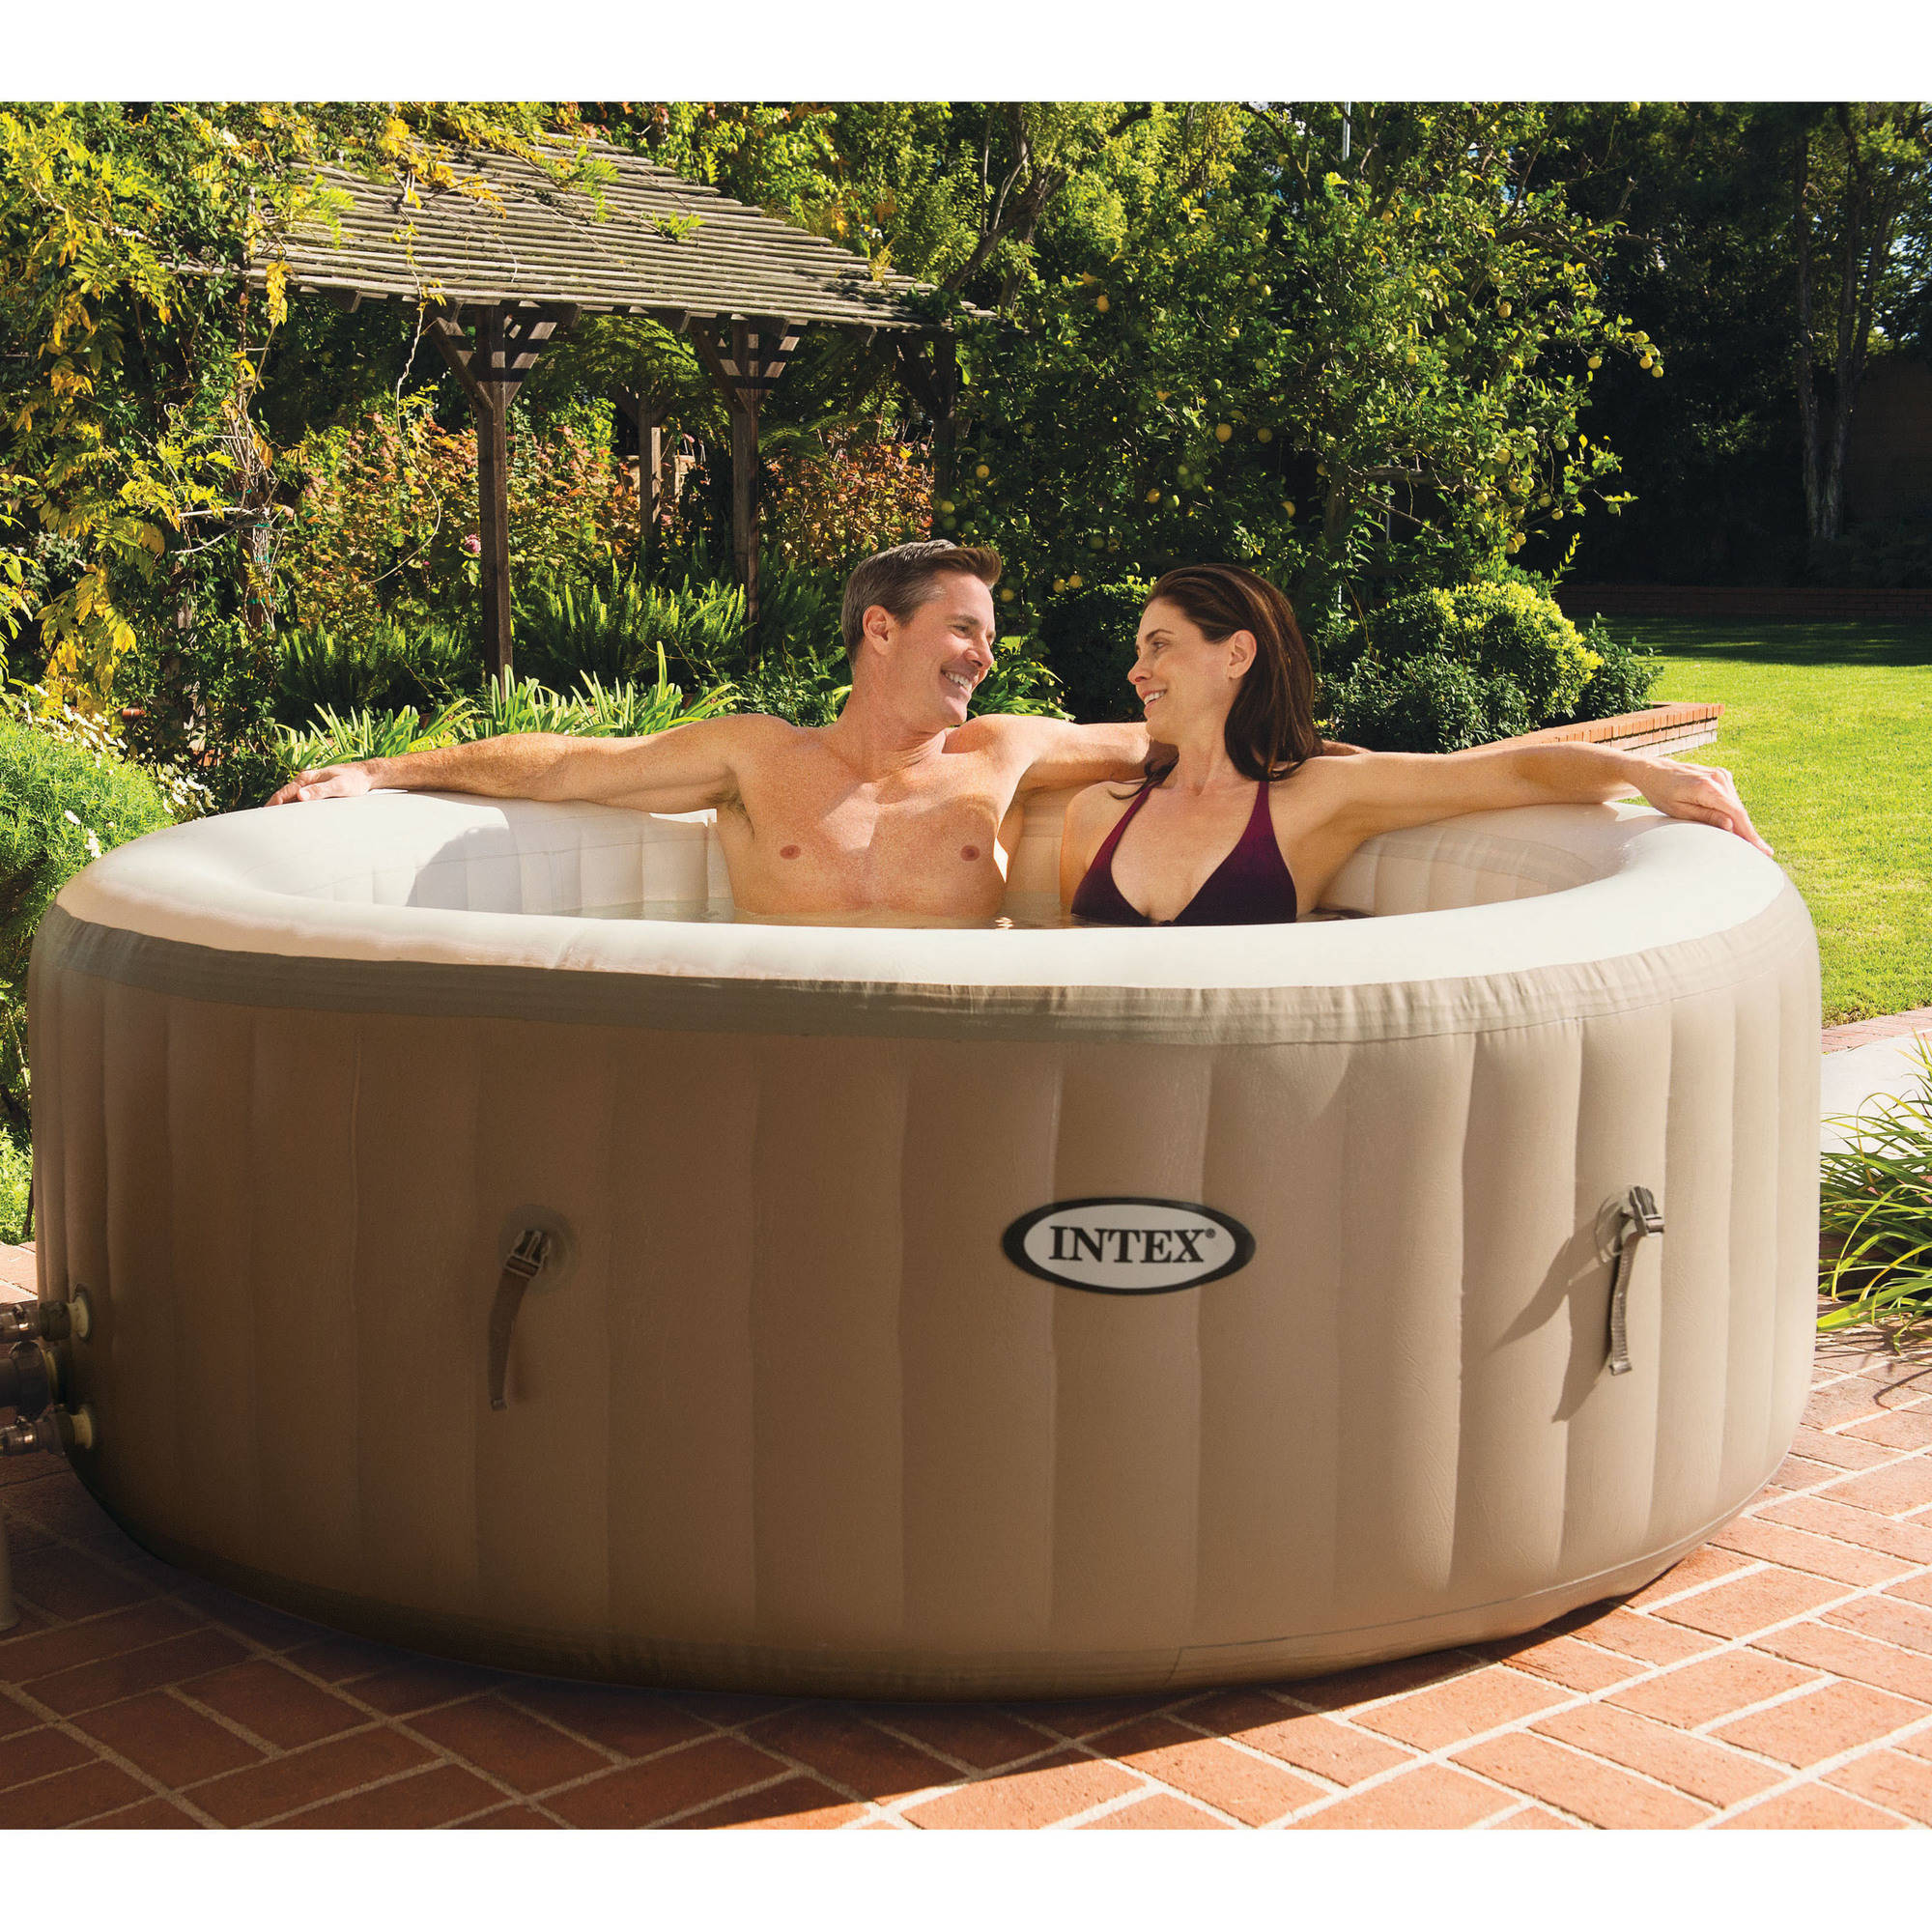 Intex PureSpa Portable Bubble Massage Spa Set with 120 high-powered bubble jets